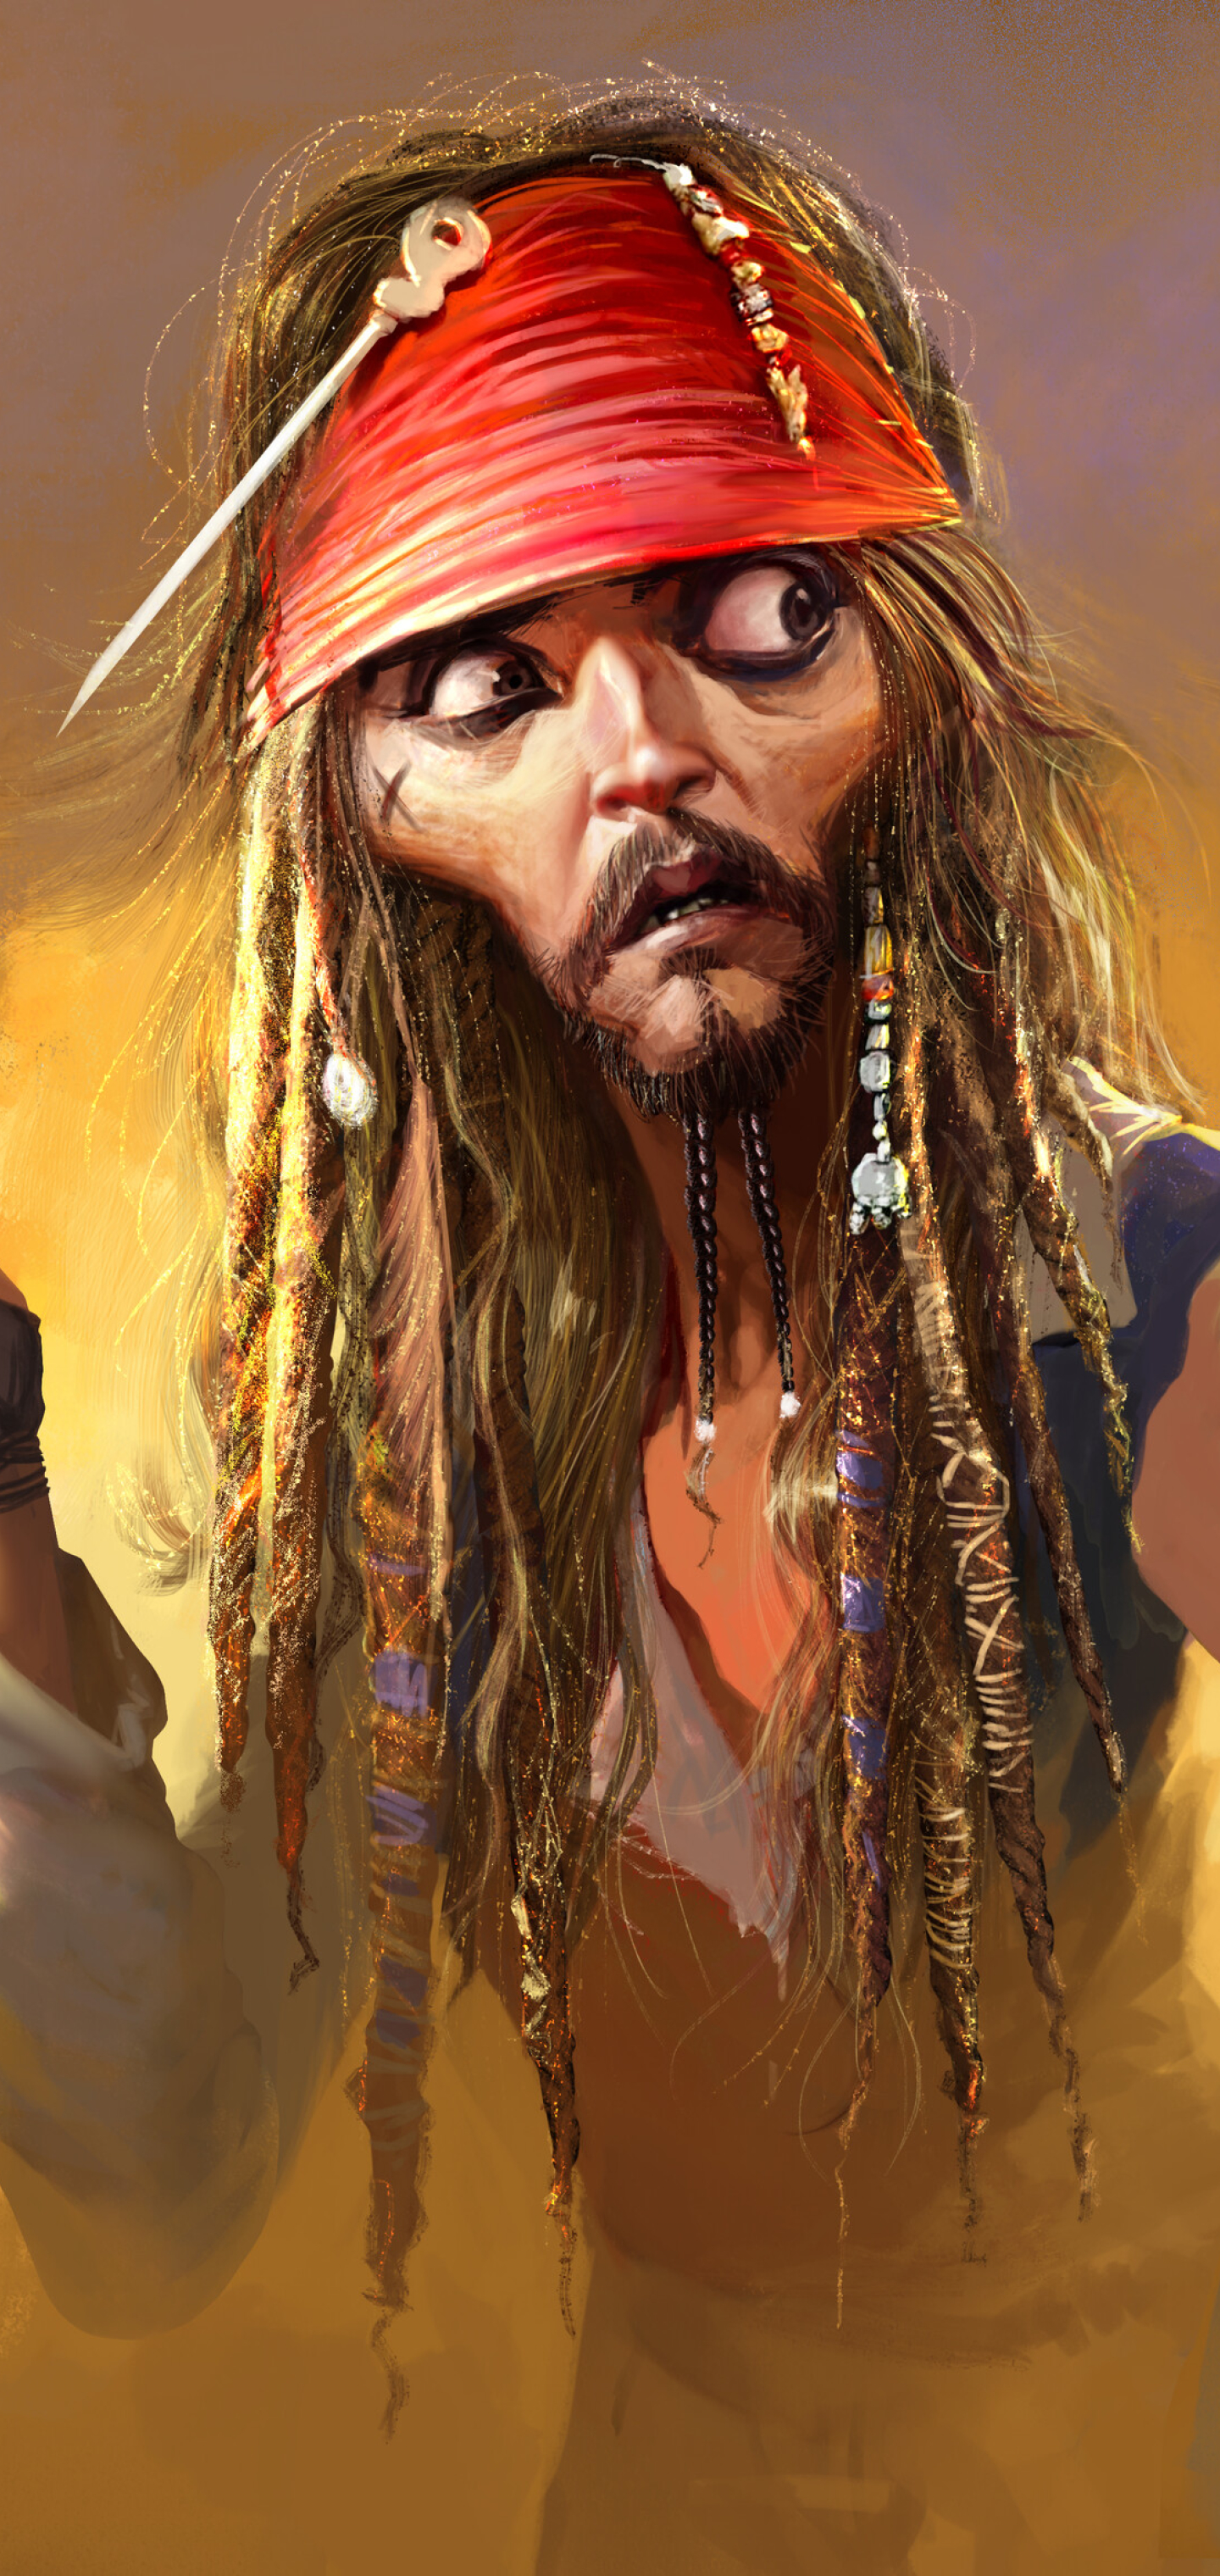 1440x3040 Jack Sparrow Pirates Of The Caribbean Funny ...